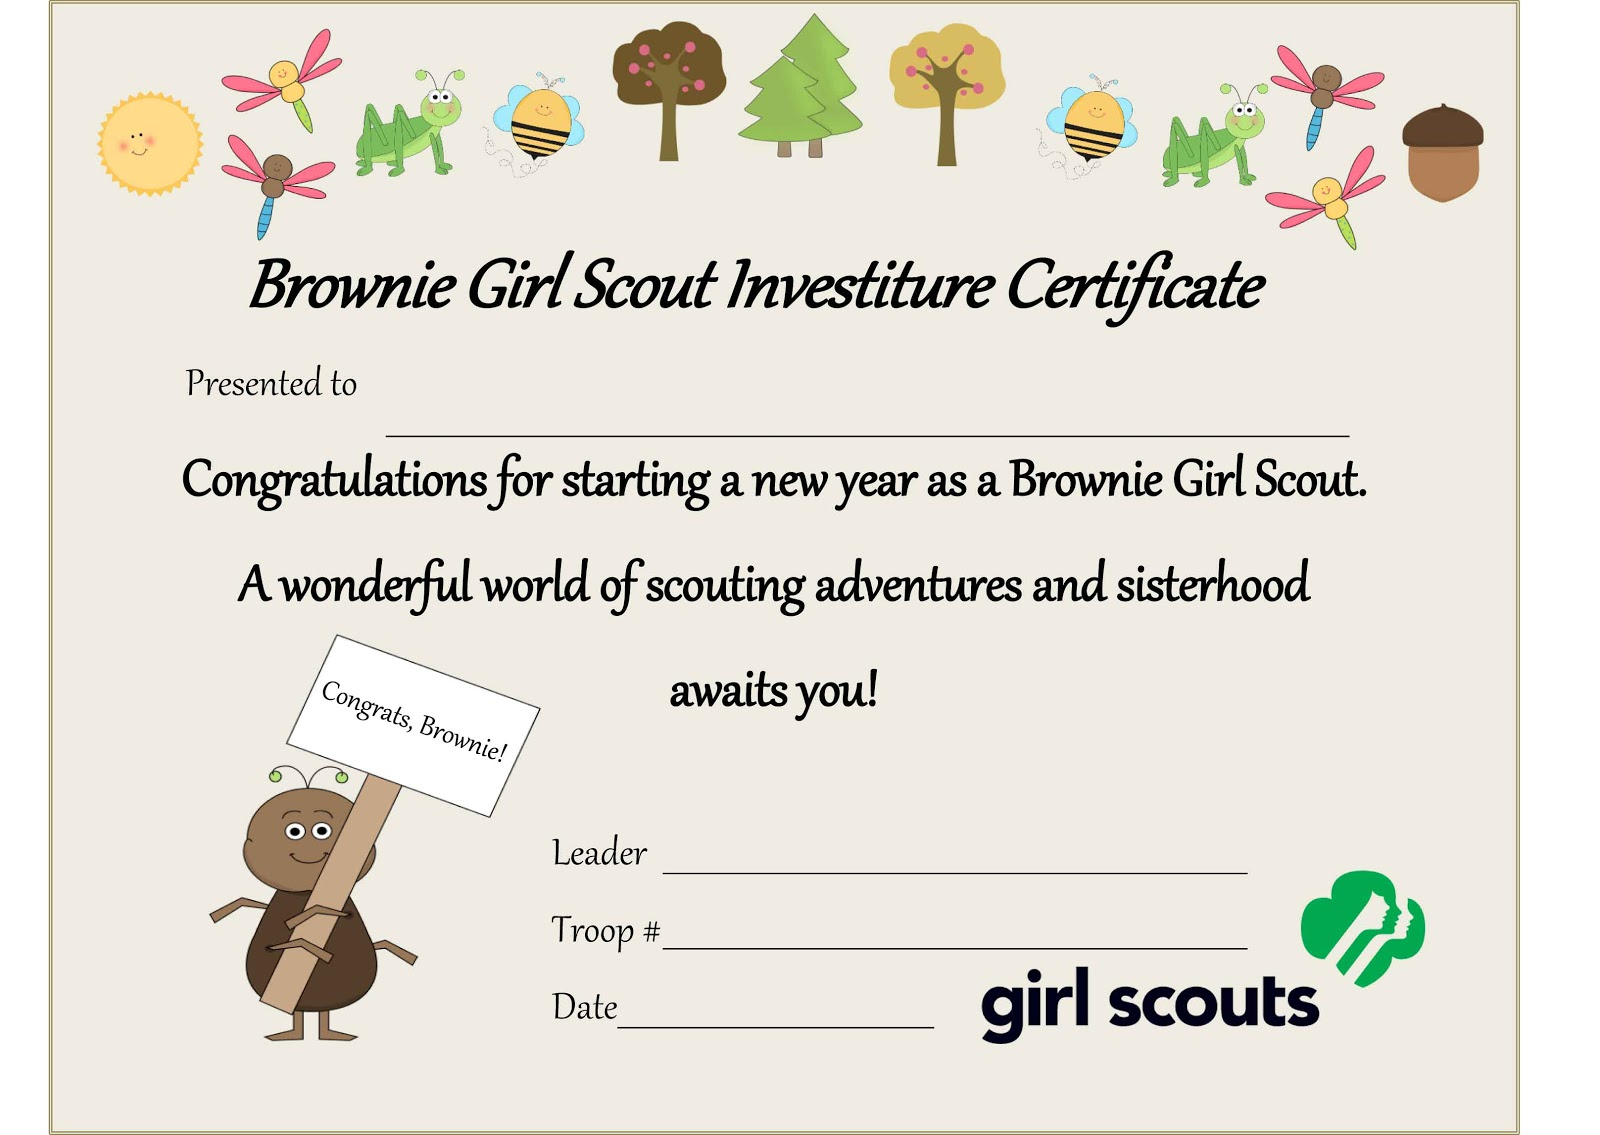 Best Girls Scout Brownie Quotes. QuotesGram